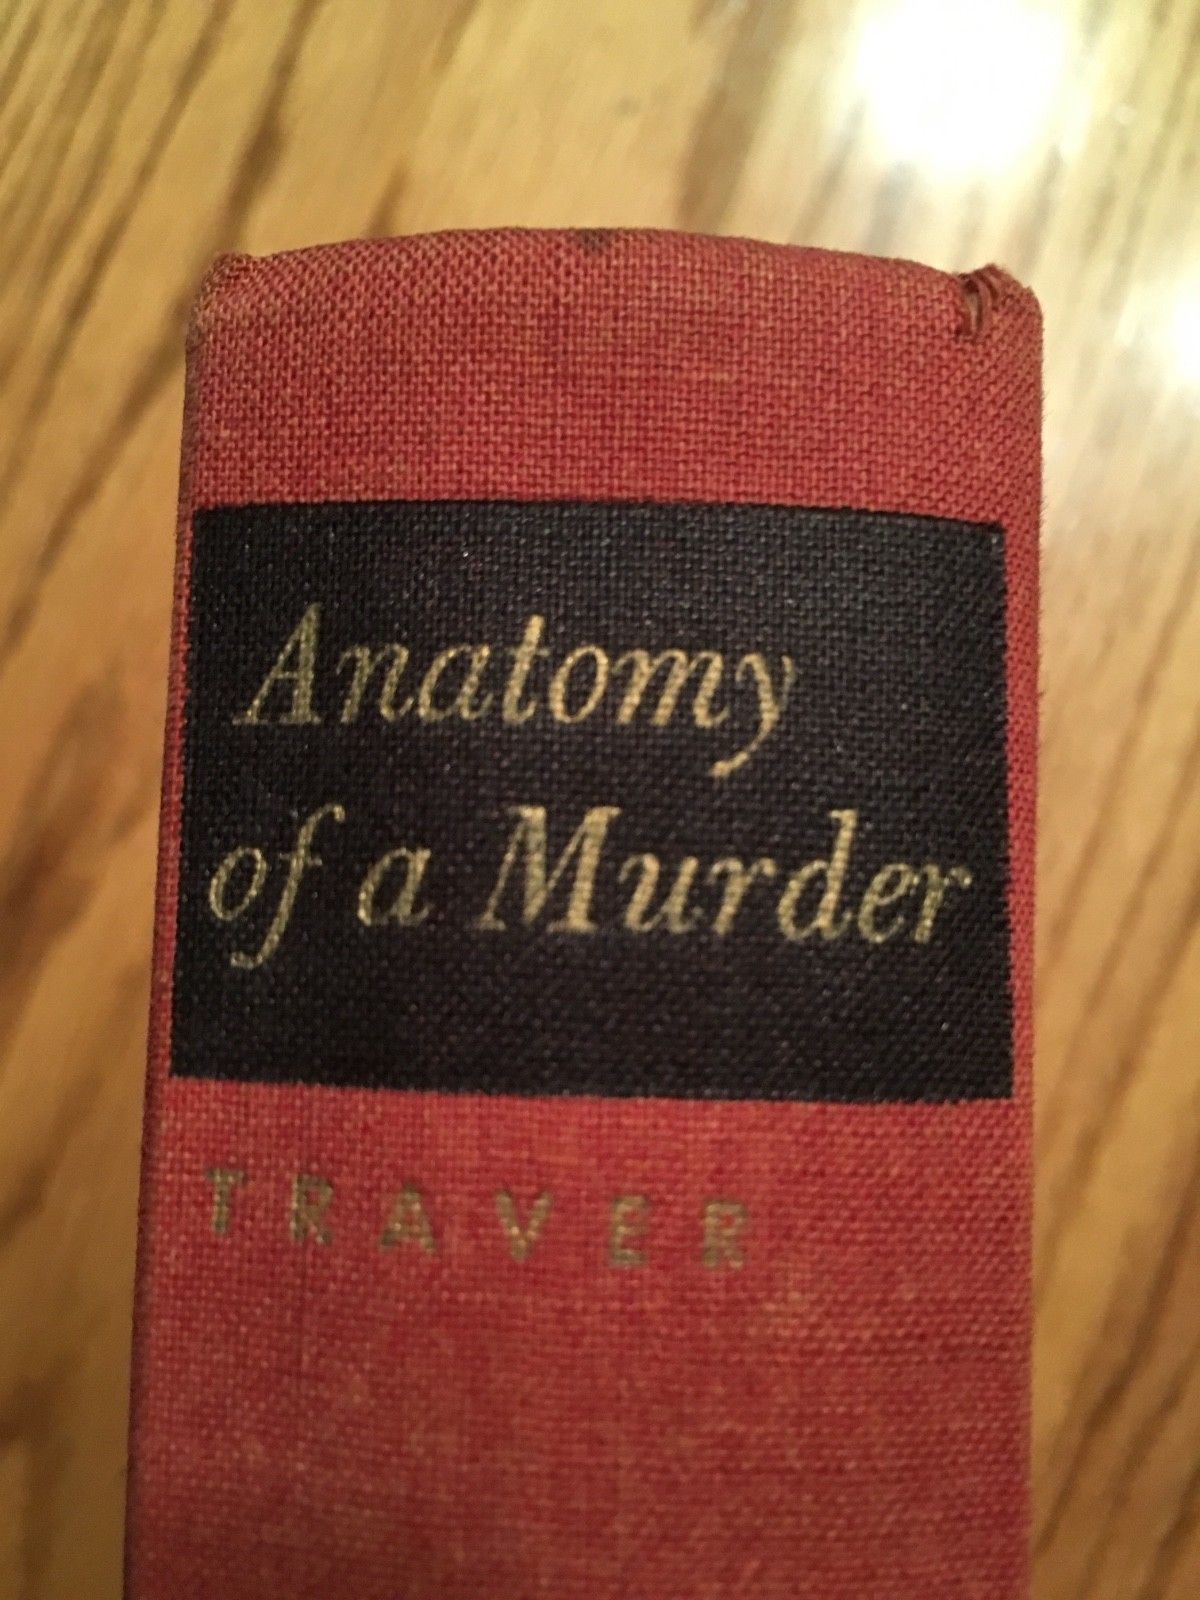 Anatomy Of A Murder Robert Traver 1958 Hardback Good Cond No